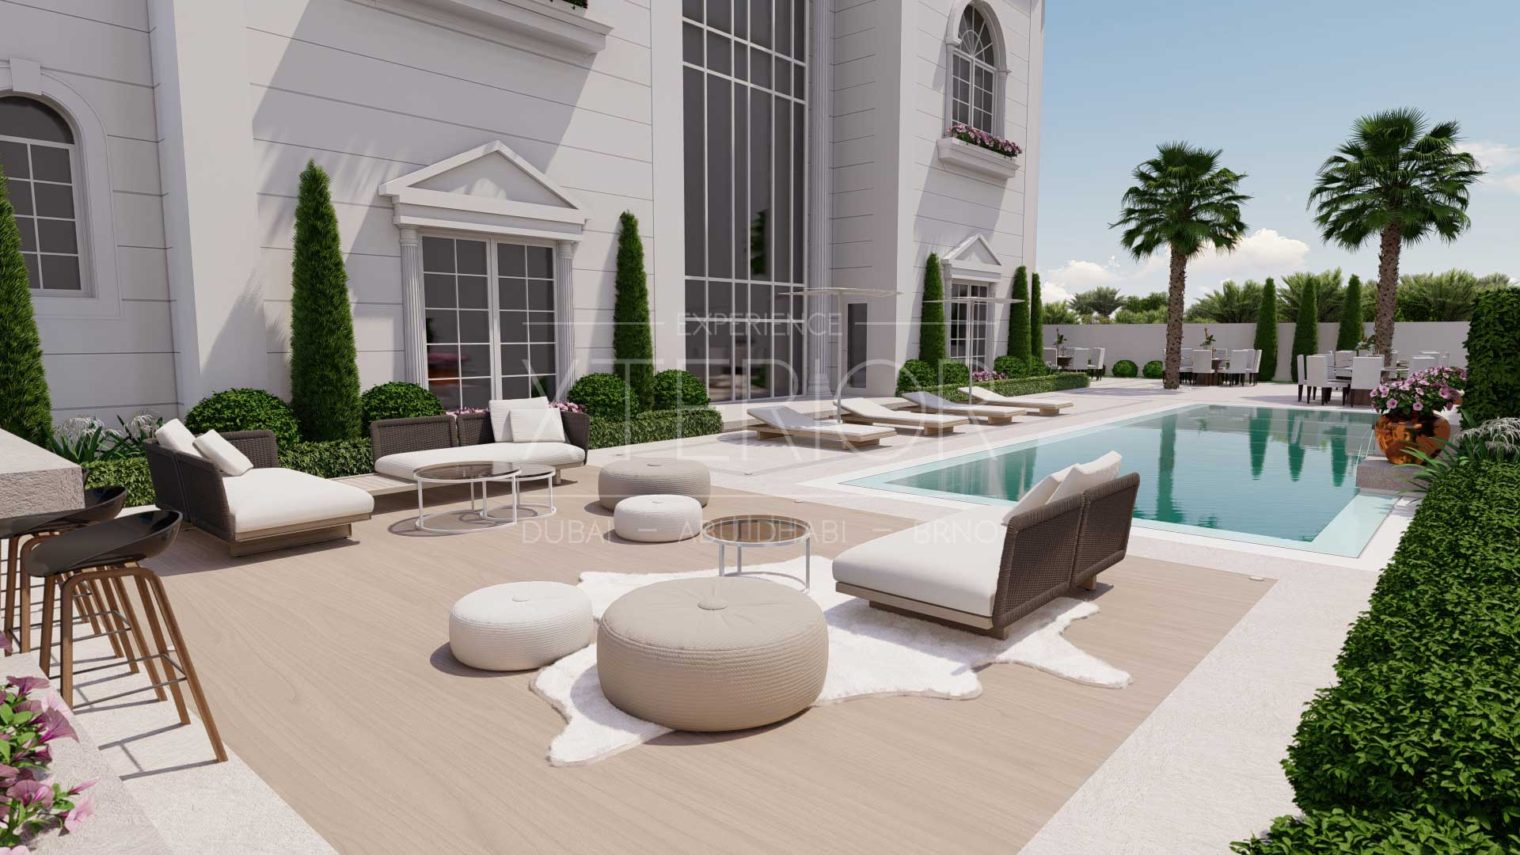 outdoor seating area near pool side